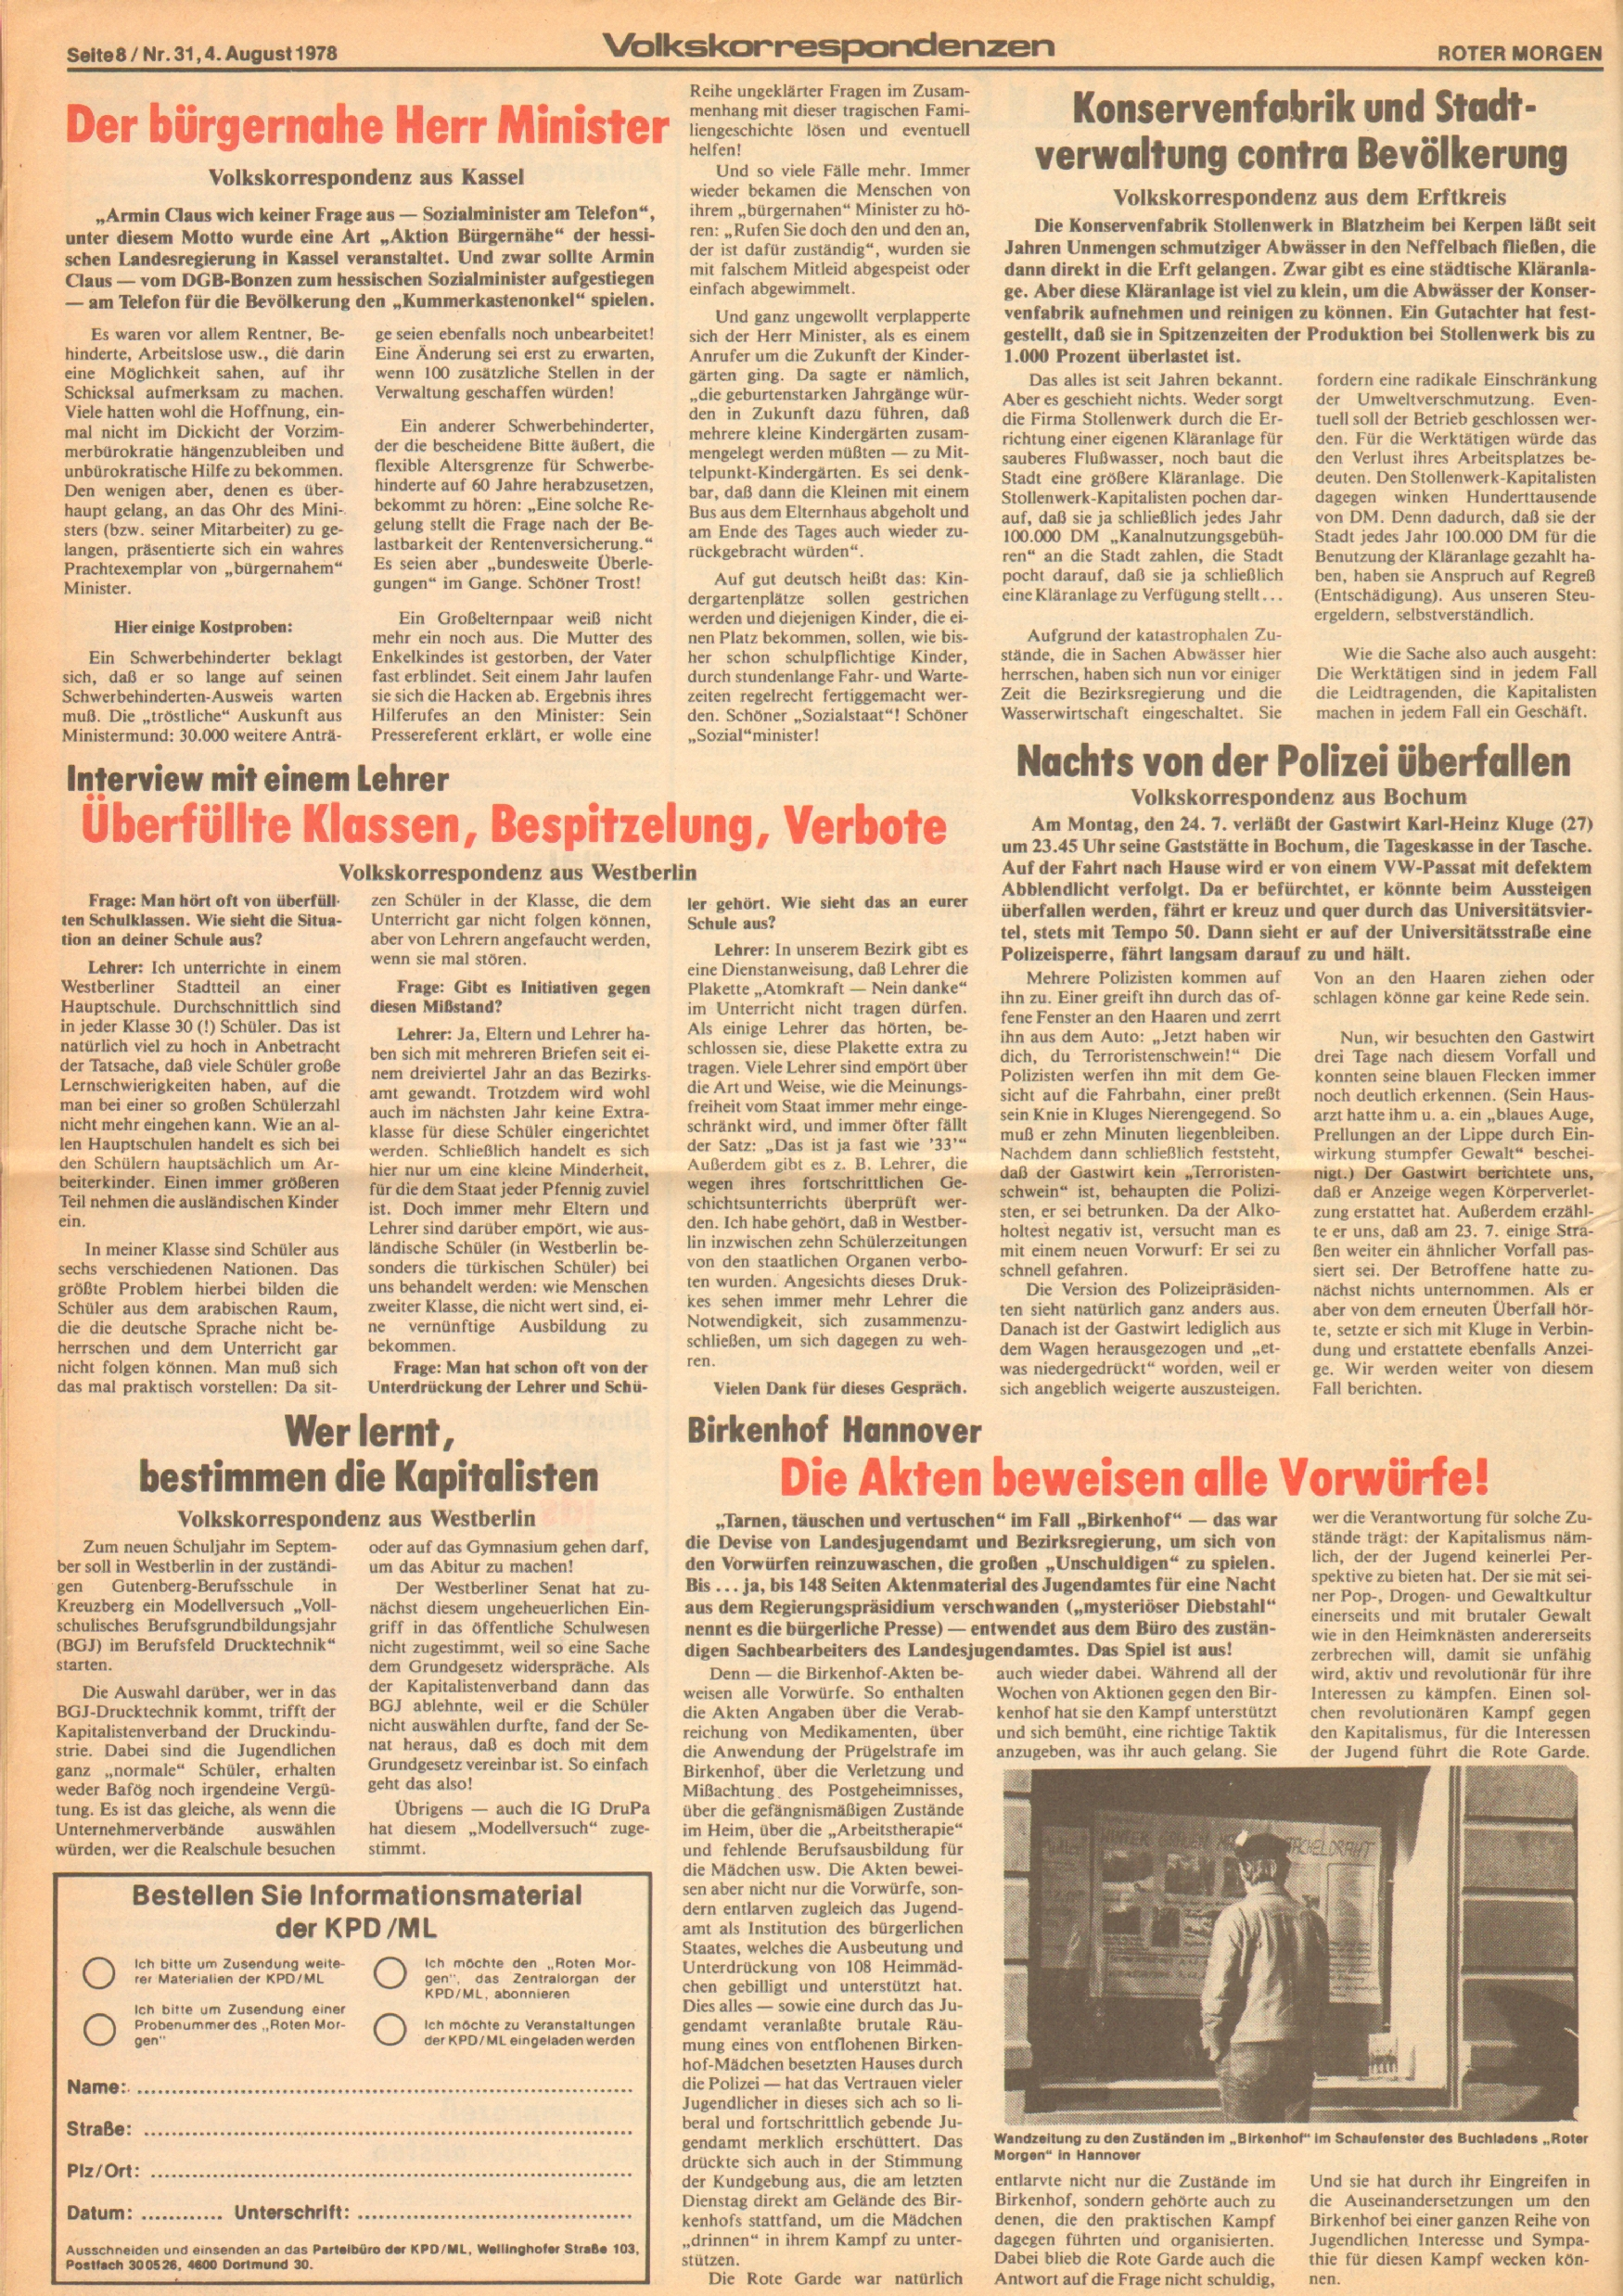 Roter Morgen, 12. Jg., 4. August 1978, Nr. 31, Seite 8